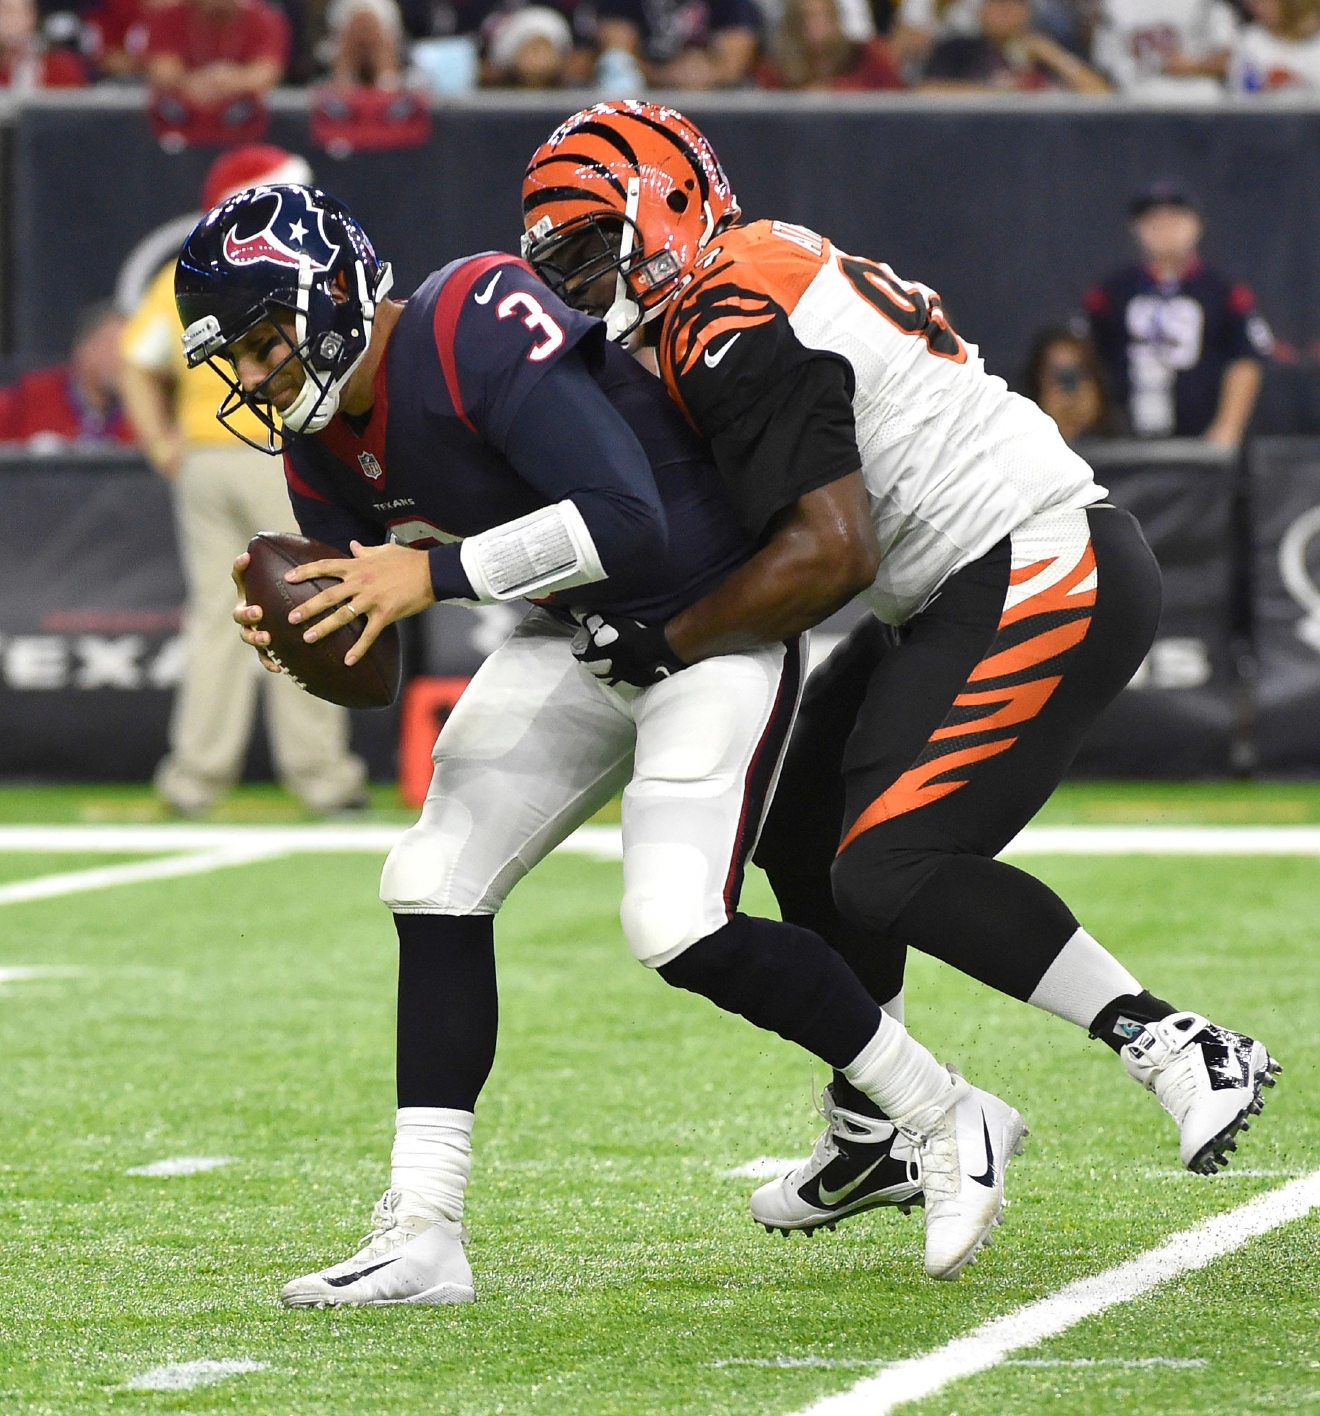 Houston Texans quarterback Tom Savage (3) is sacked by Cincinnati Bengals defensive tackle Geno Atkins (97) during the first half of an NFL football game Saturday, Dec. 24, 2016, in Houston. (AP Photo/Eric Christian Smith)